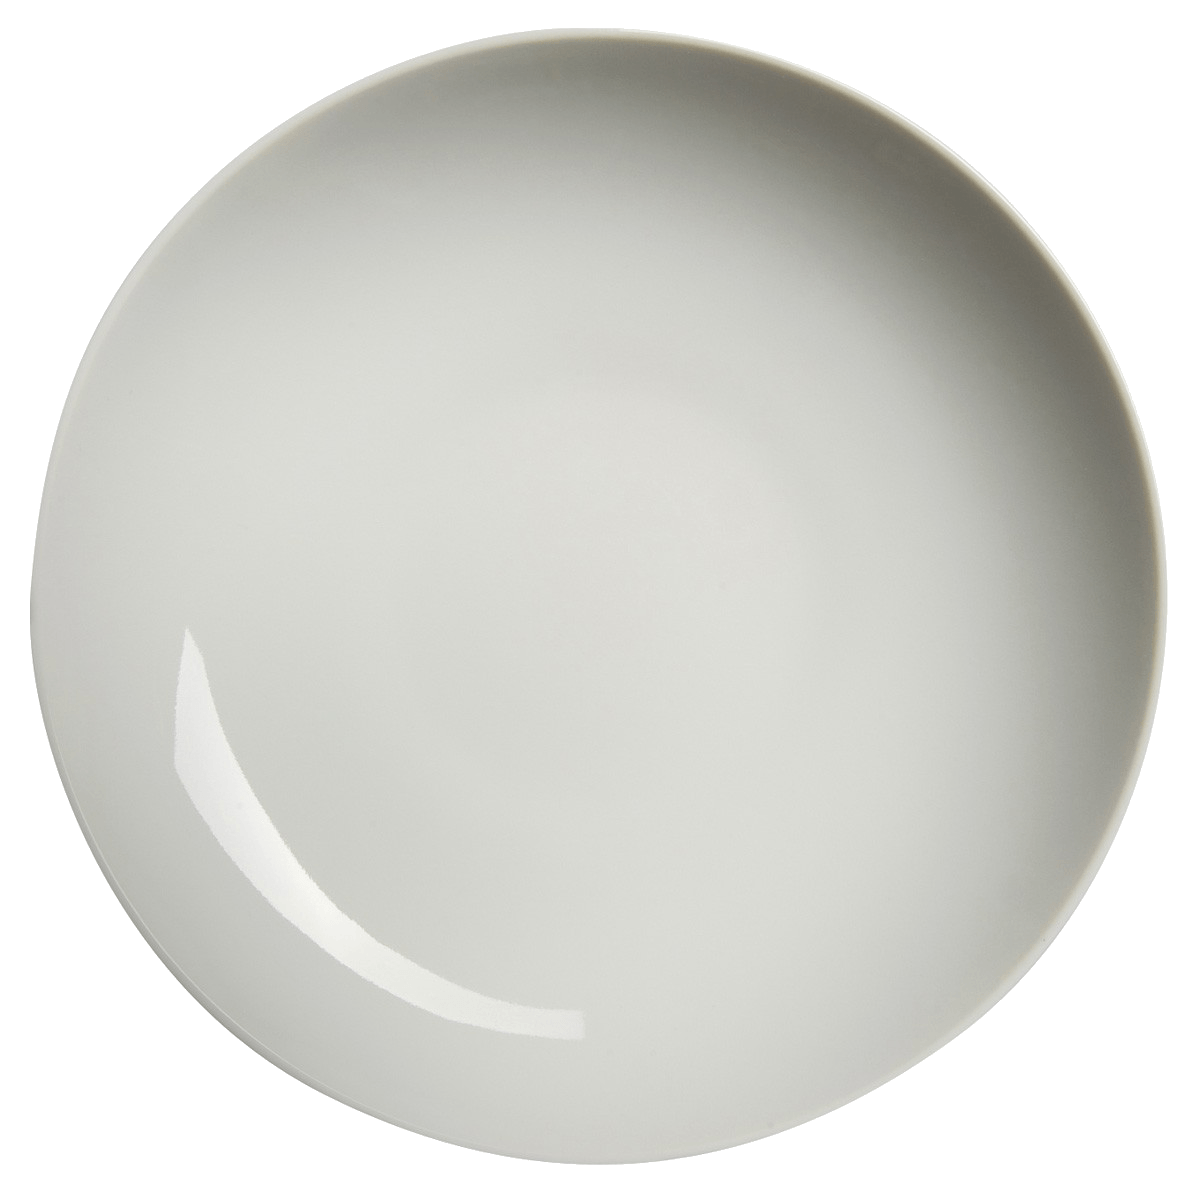 empty plate transparent png stickpng #15092